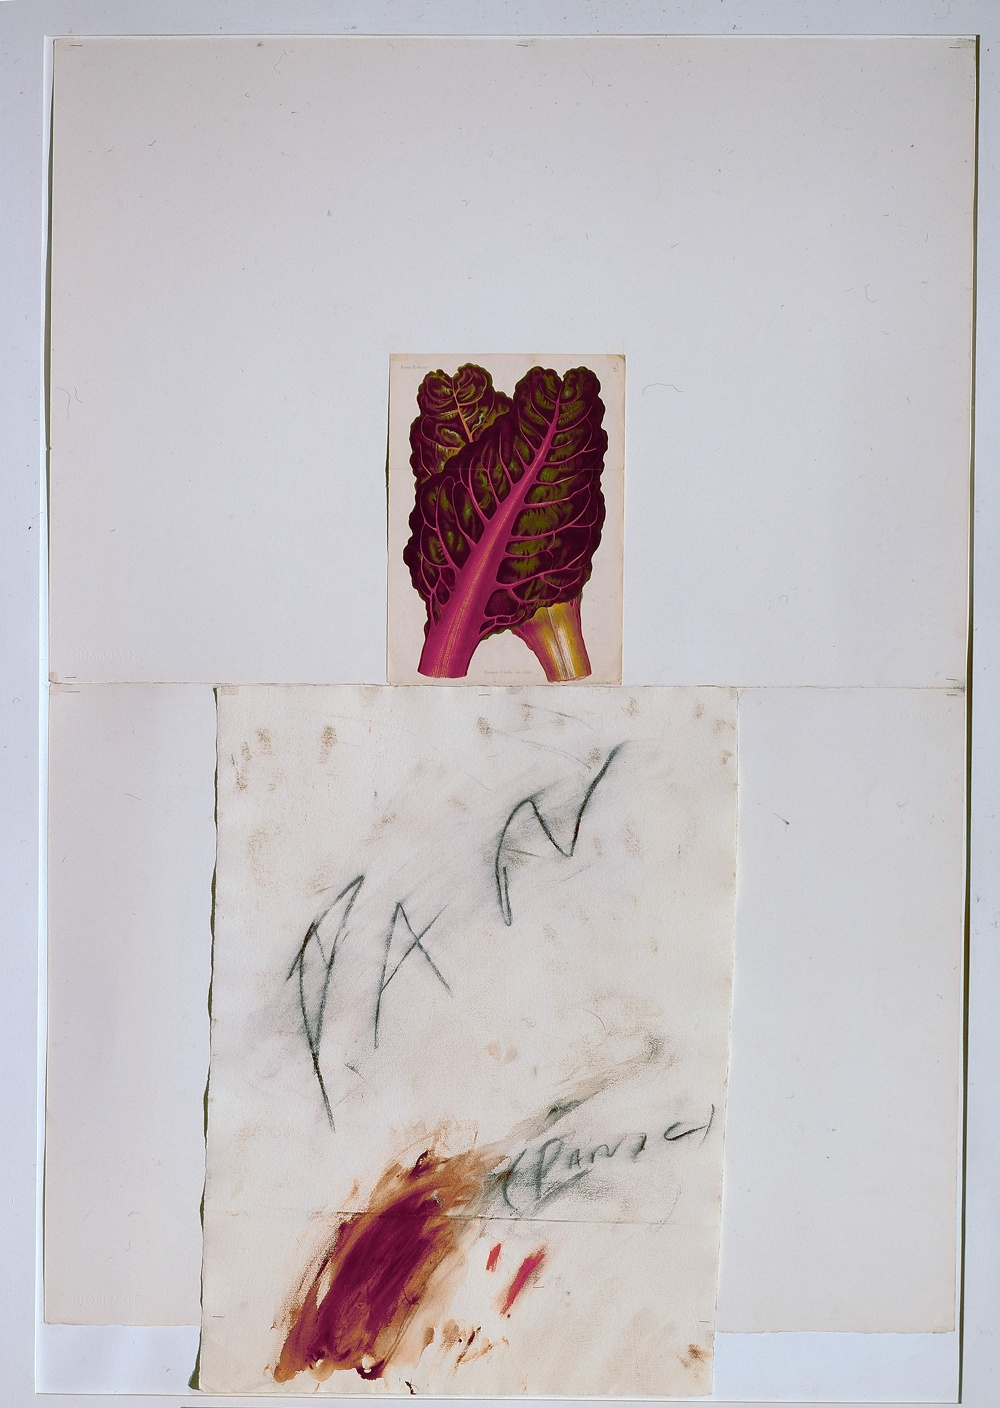 Cy Twombly, Pan, 1975, 148 x 100cm Private Collection, © Cy Twombly, Courtesy: Cy Twombly Archive